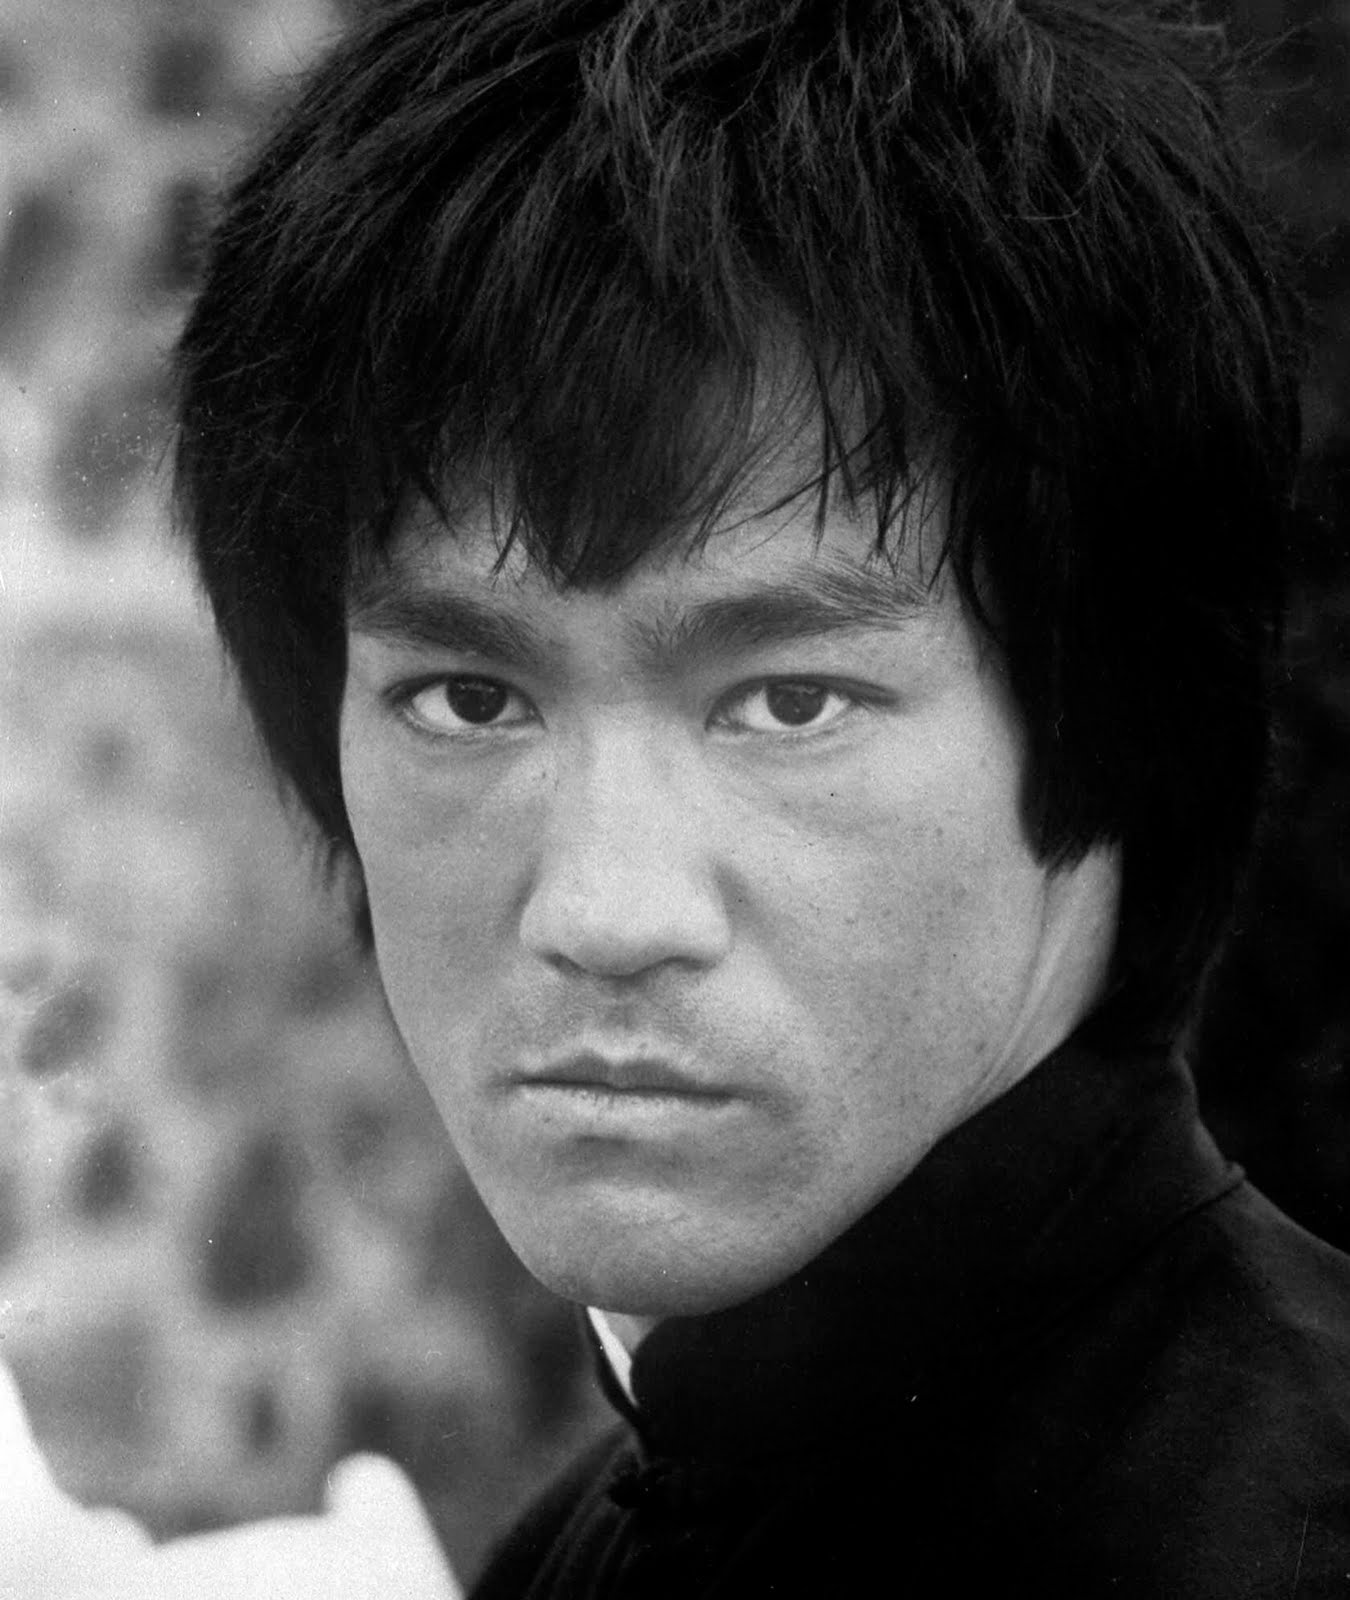 All Wallpapers: Bruce lee Hd Wallpapers